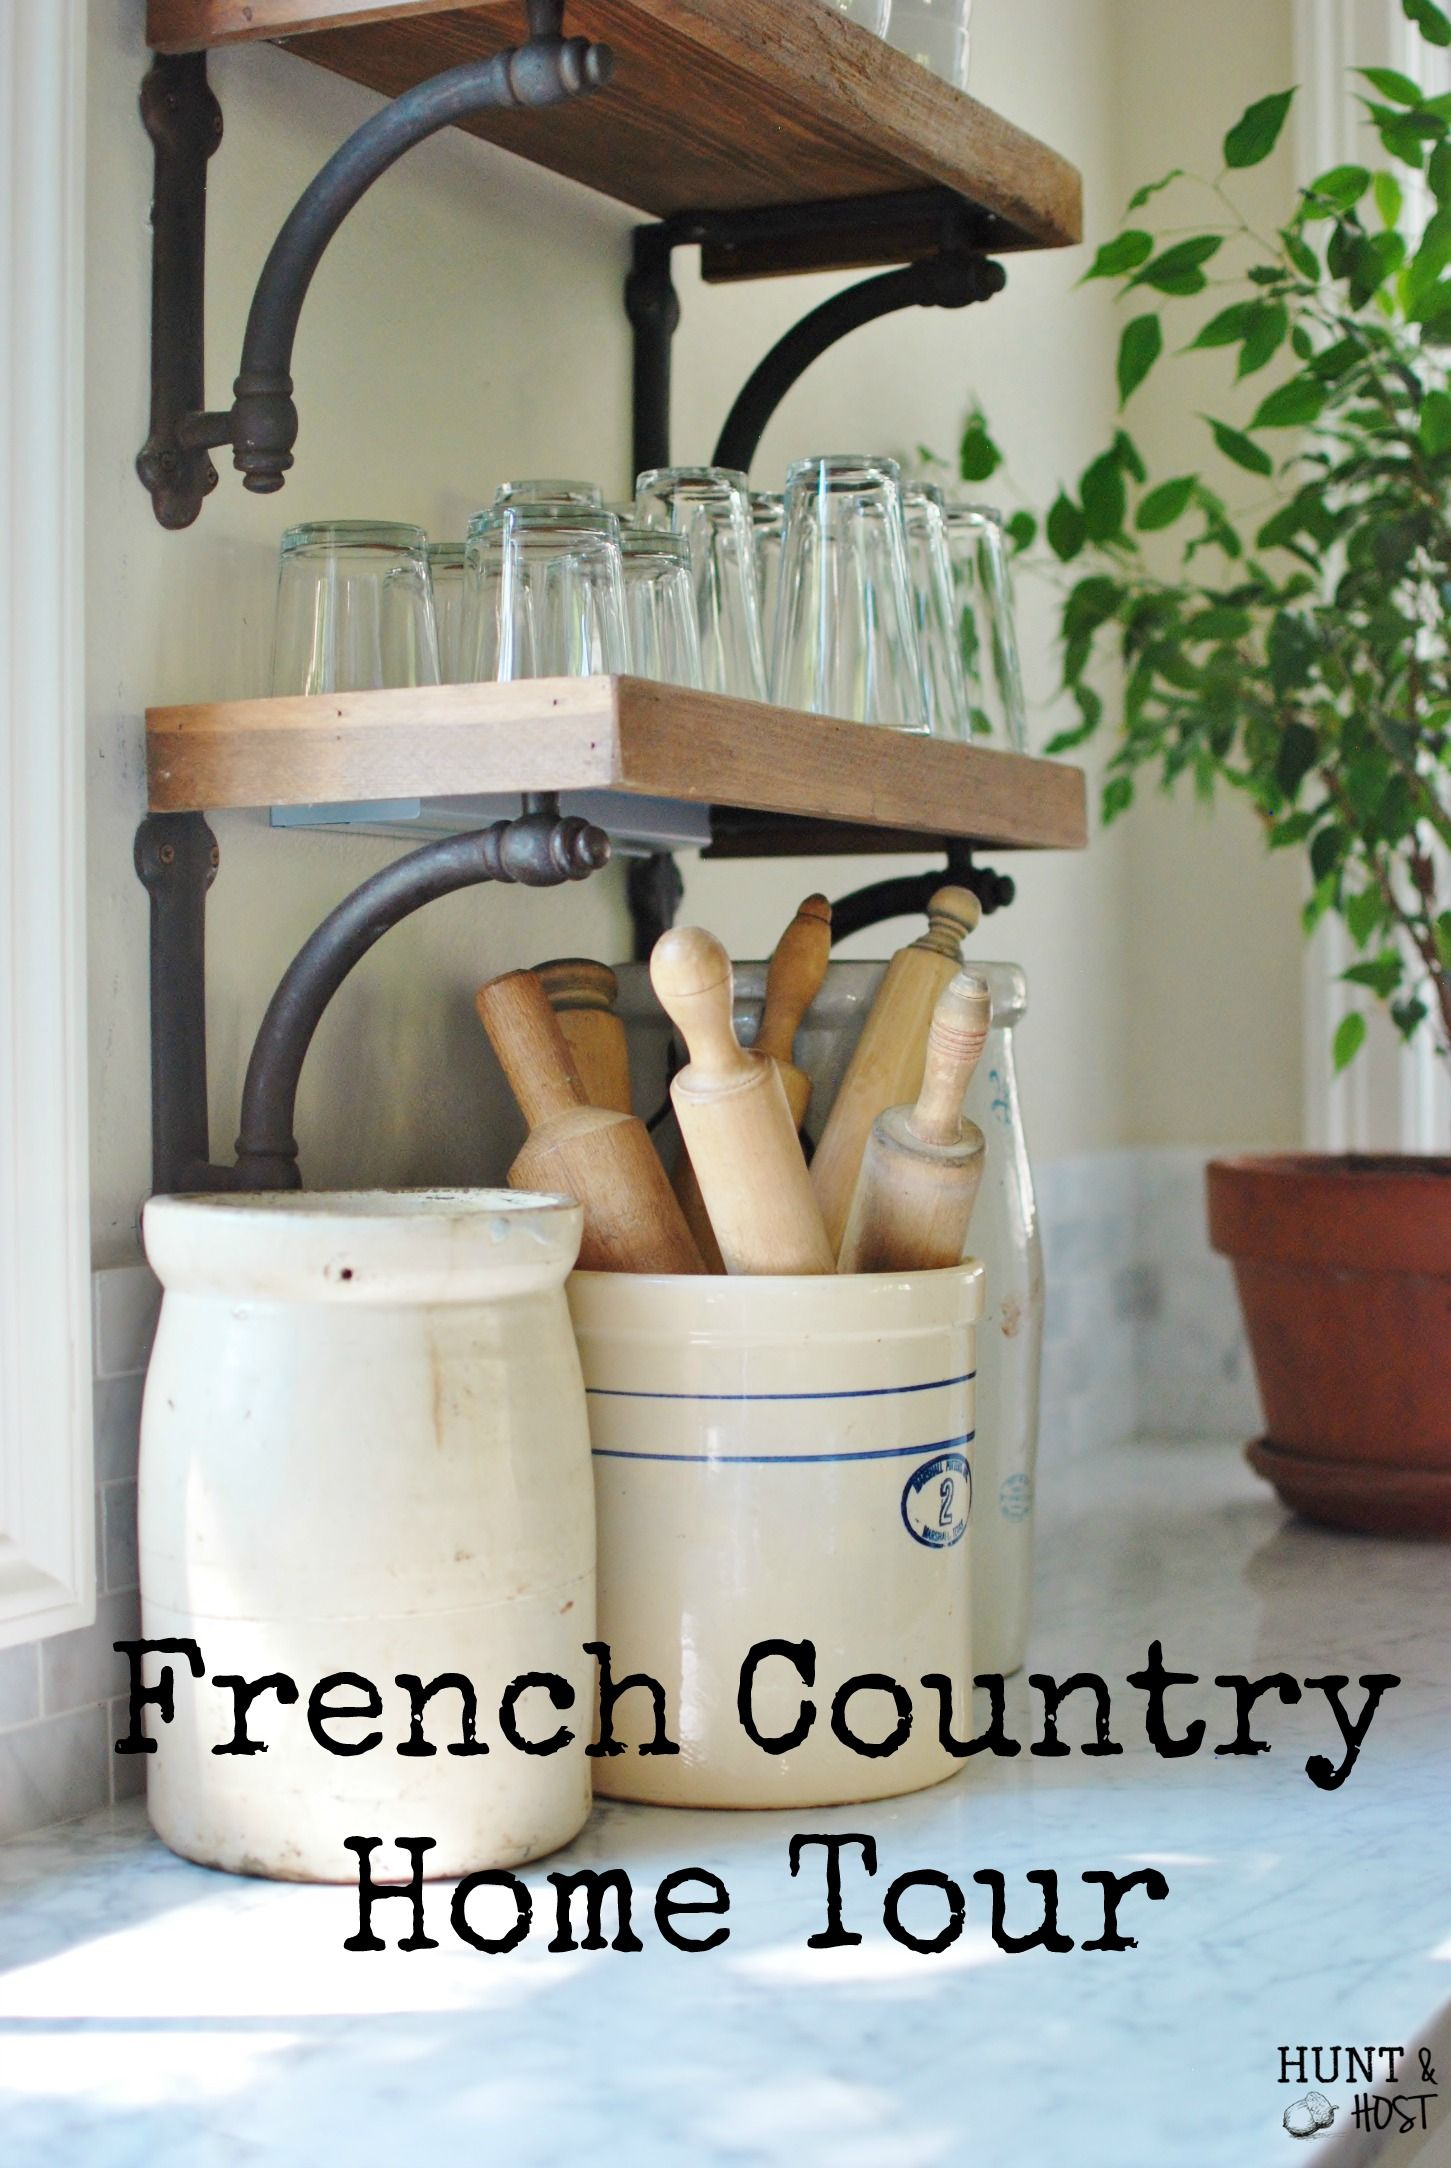 french country home tour homes french country house french rh pinterest com